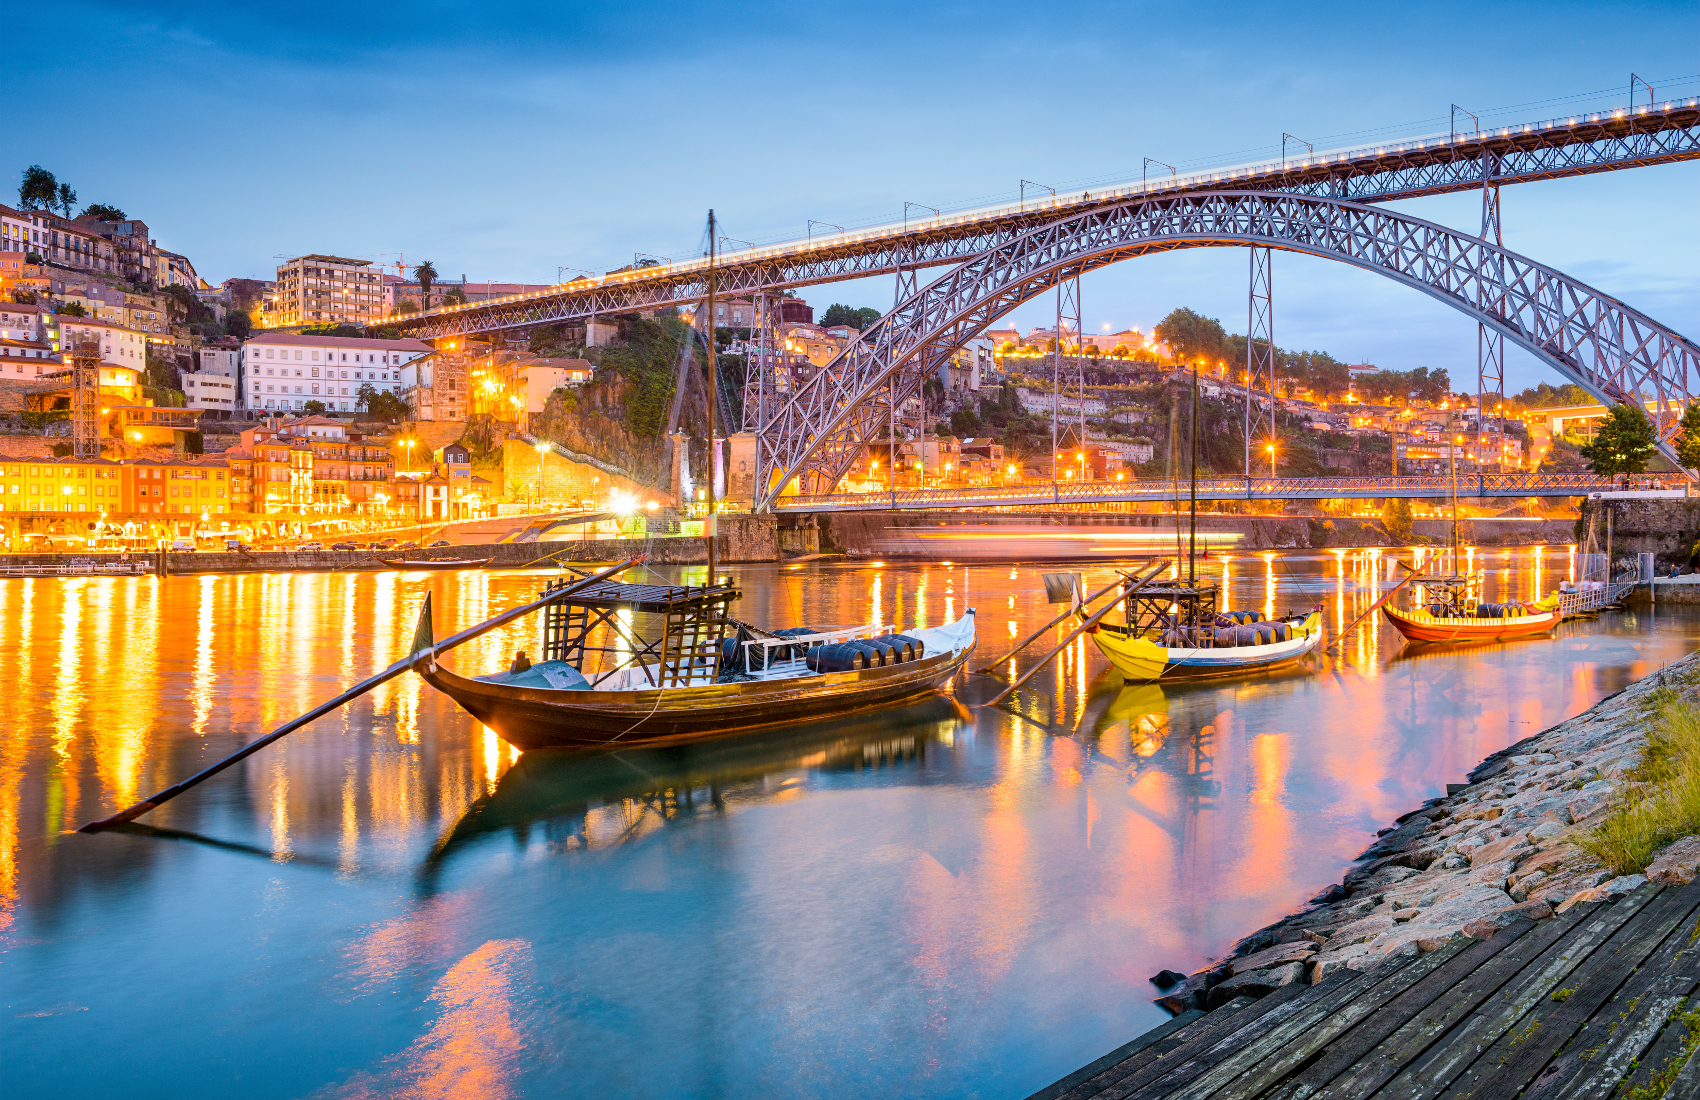 Porto travel guide for first-time visitors